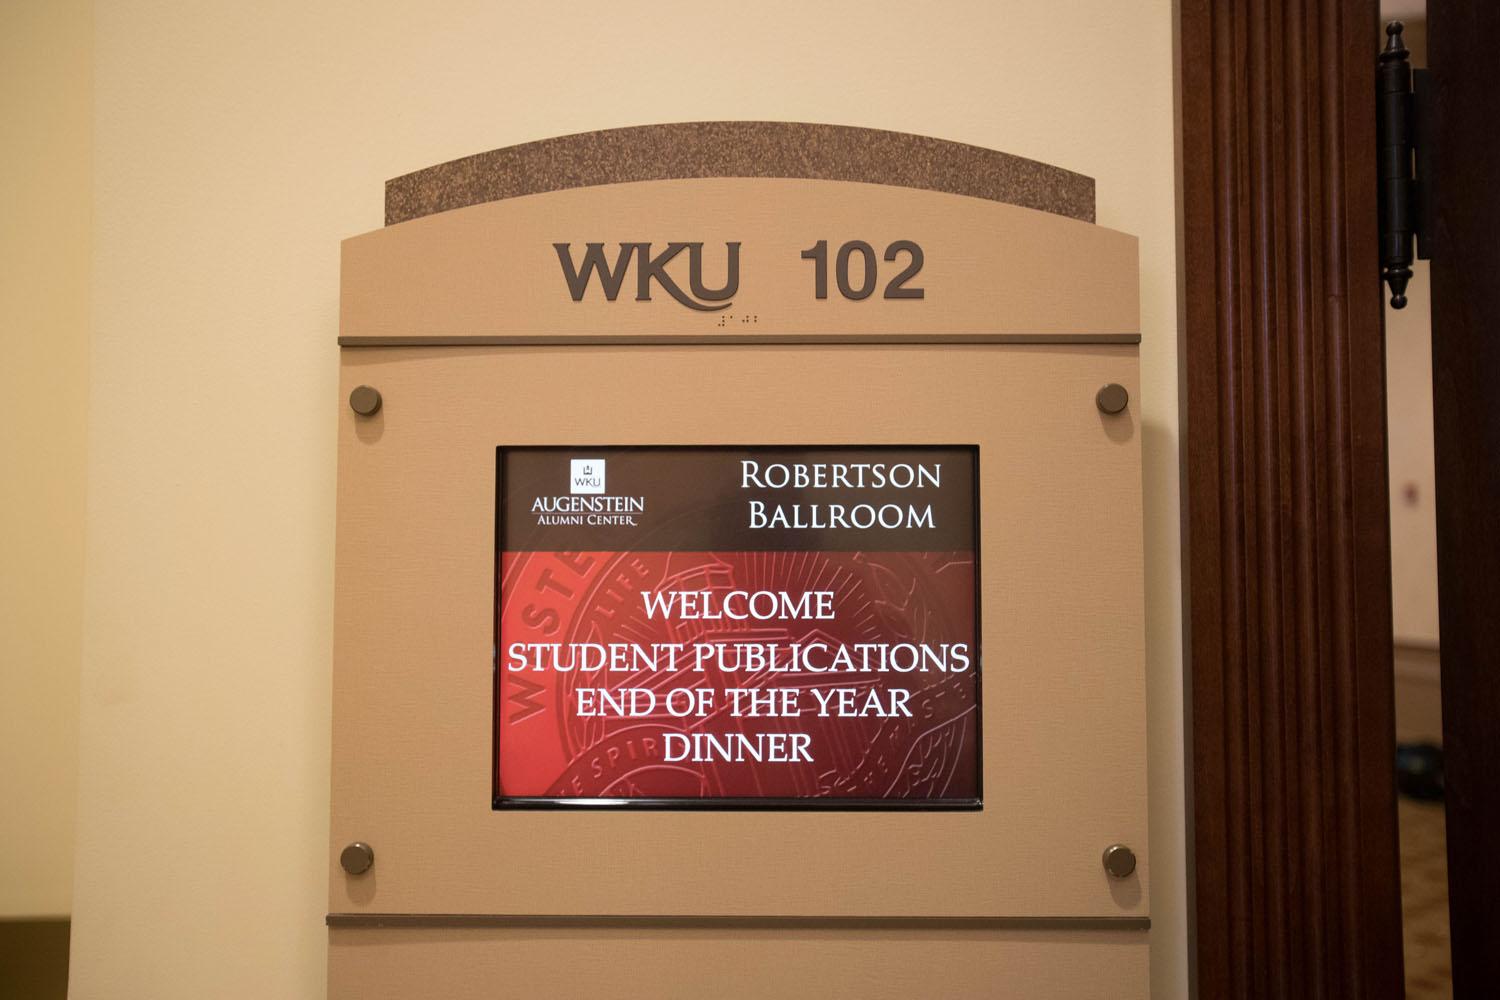 western kentucky university student publications dinner